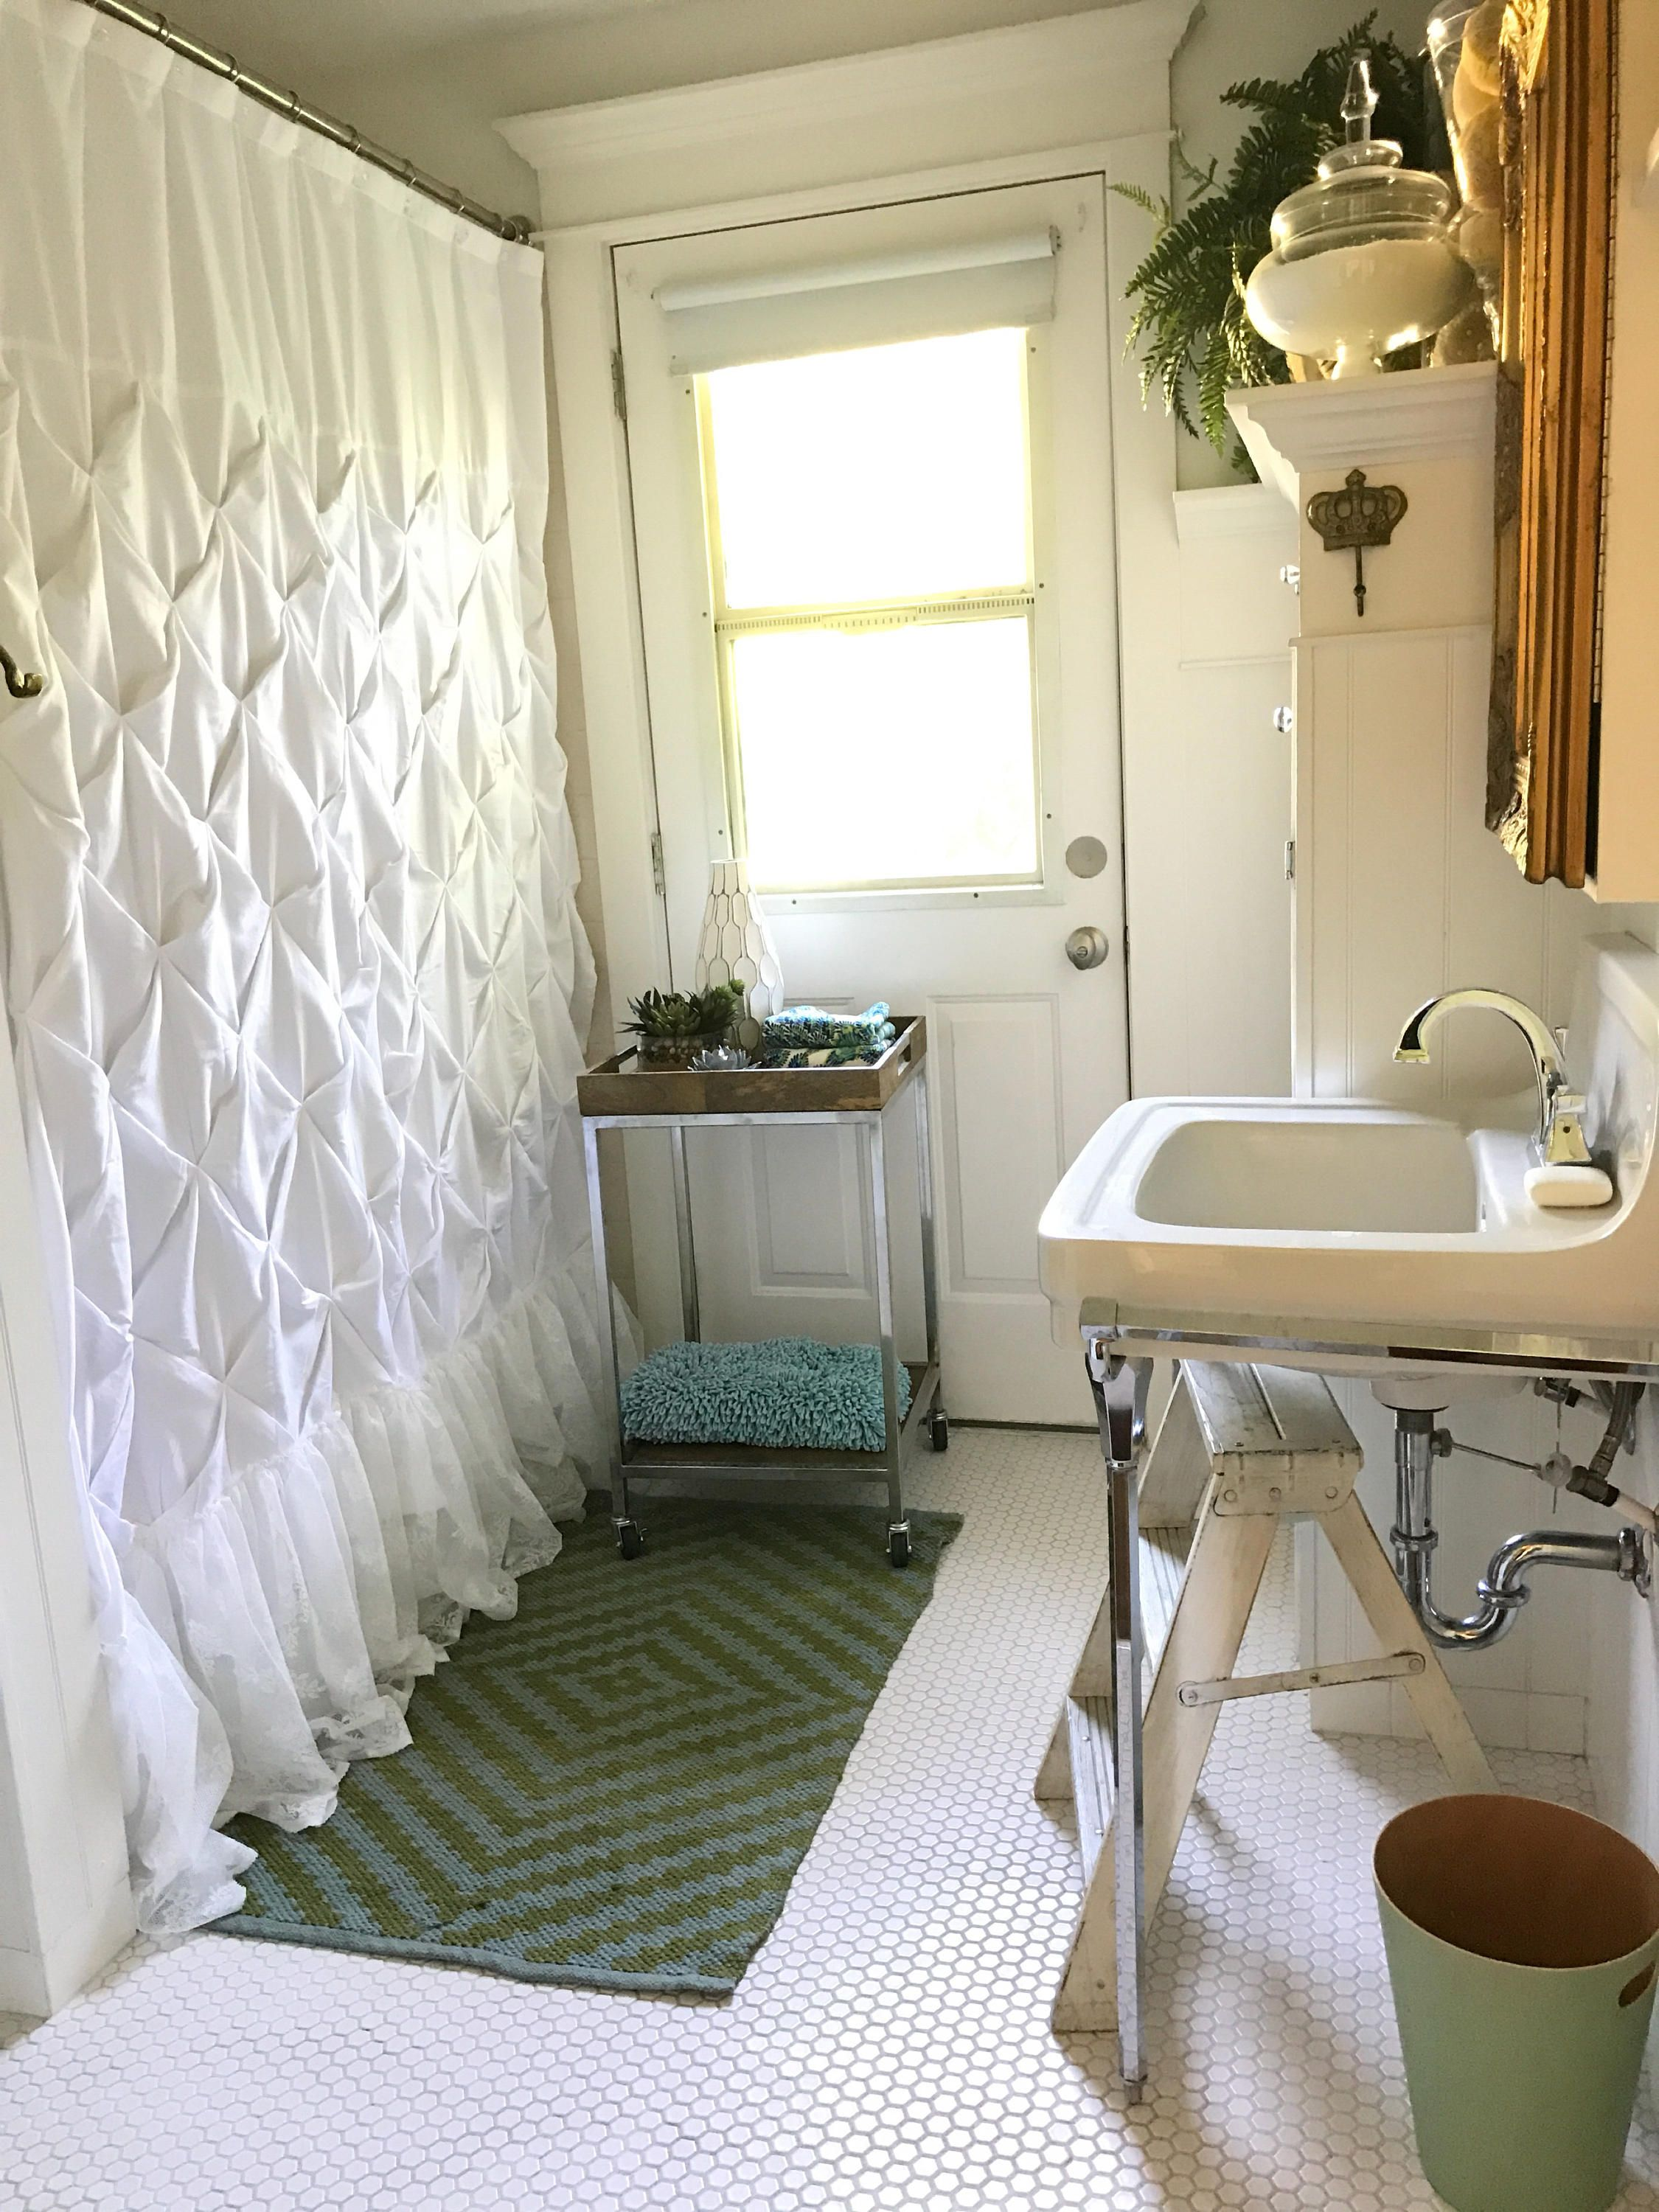 Extra Long Shower Curtain White Pin Tuck With Lace Ruffle